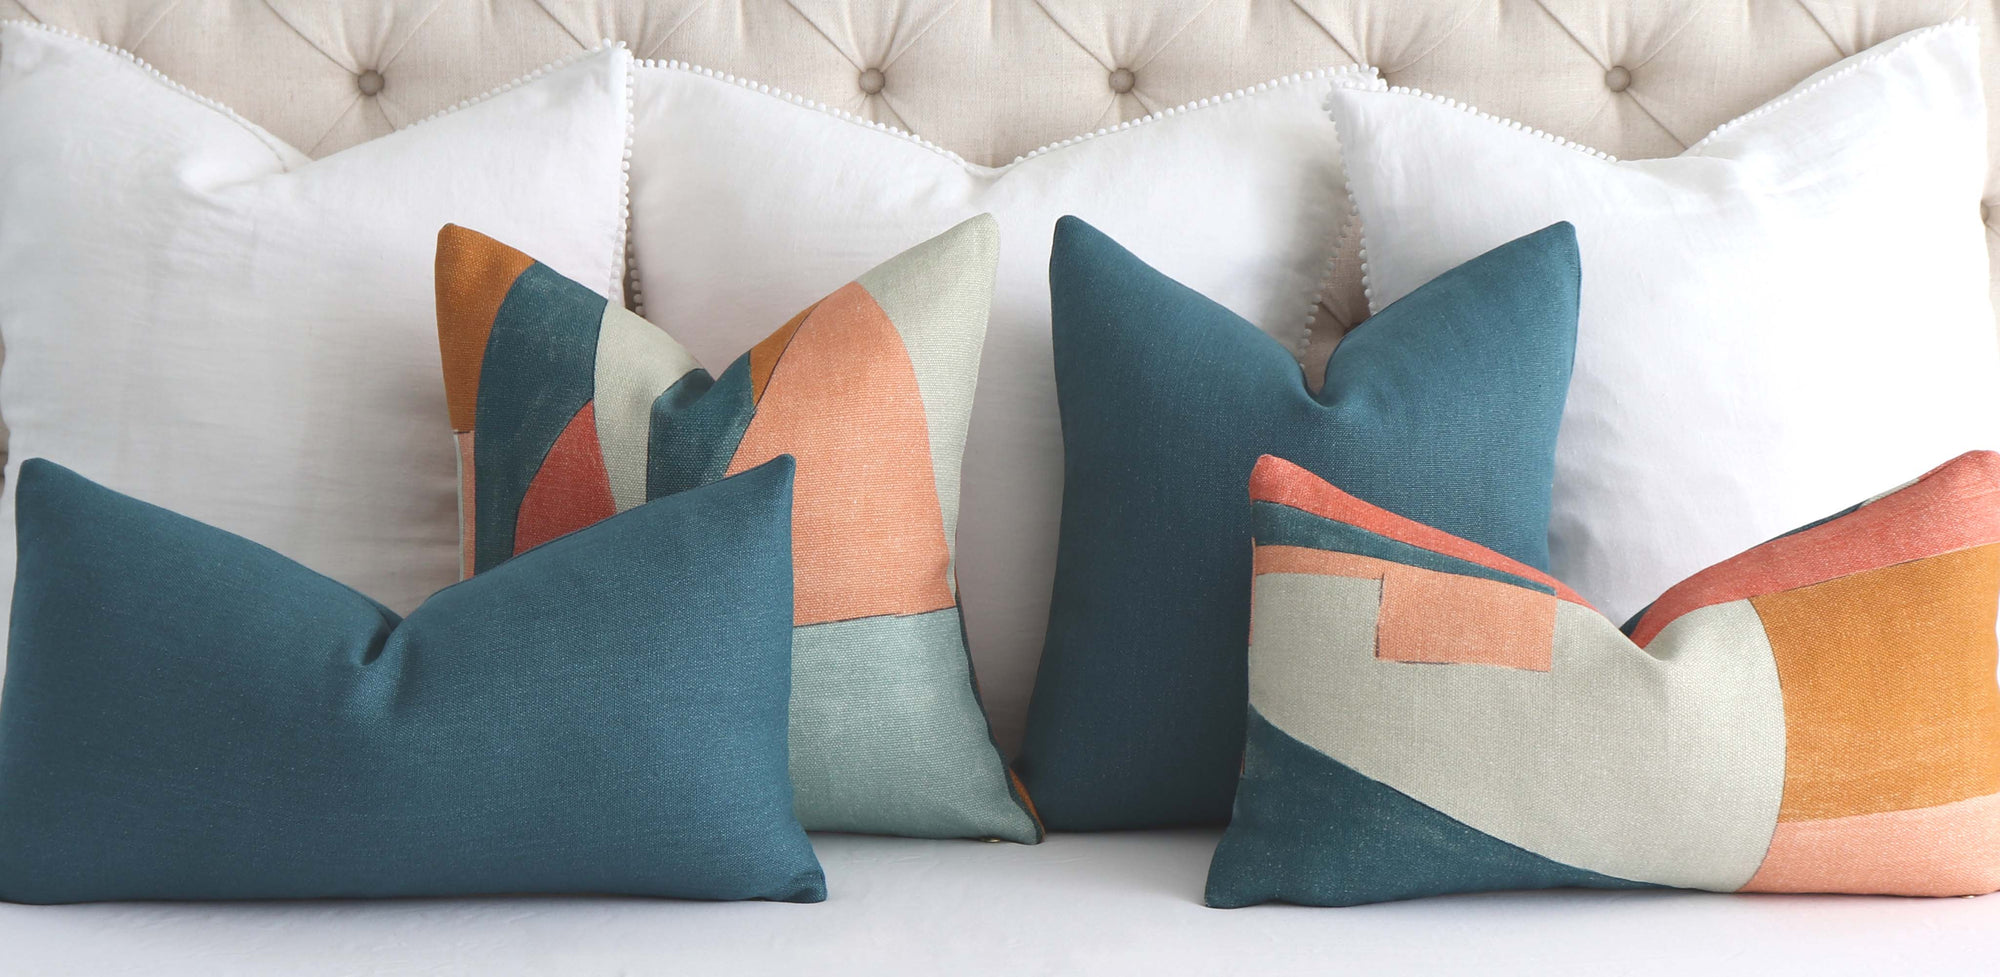 How To Make Your House More Beautiful With Pillows?